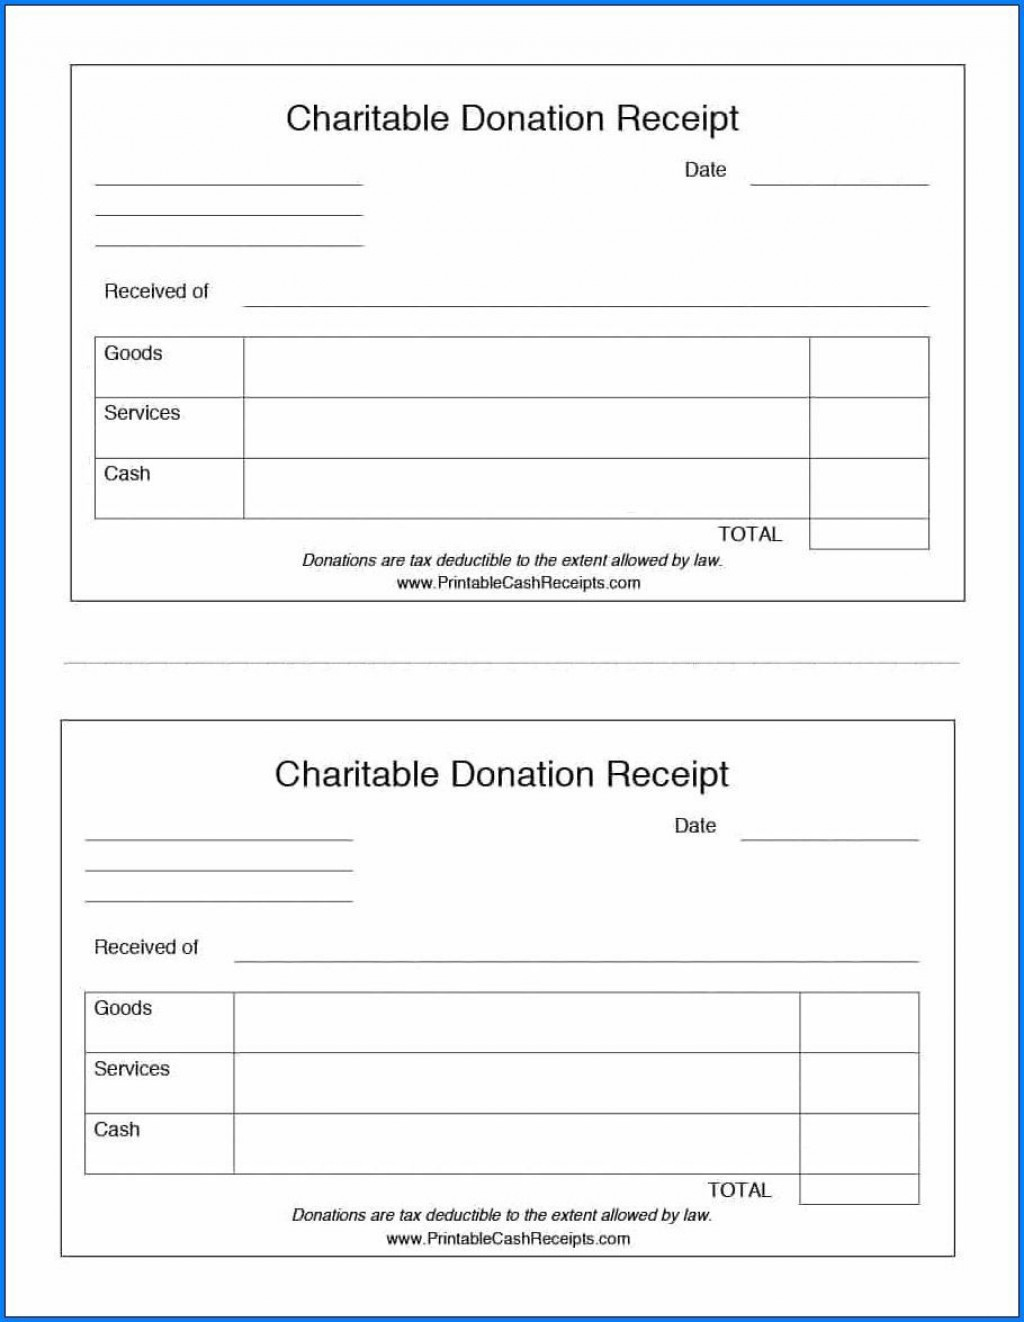 007 Dreaded Tax Deductible Donation Receipt Printable Image Large